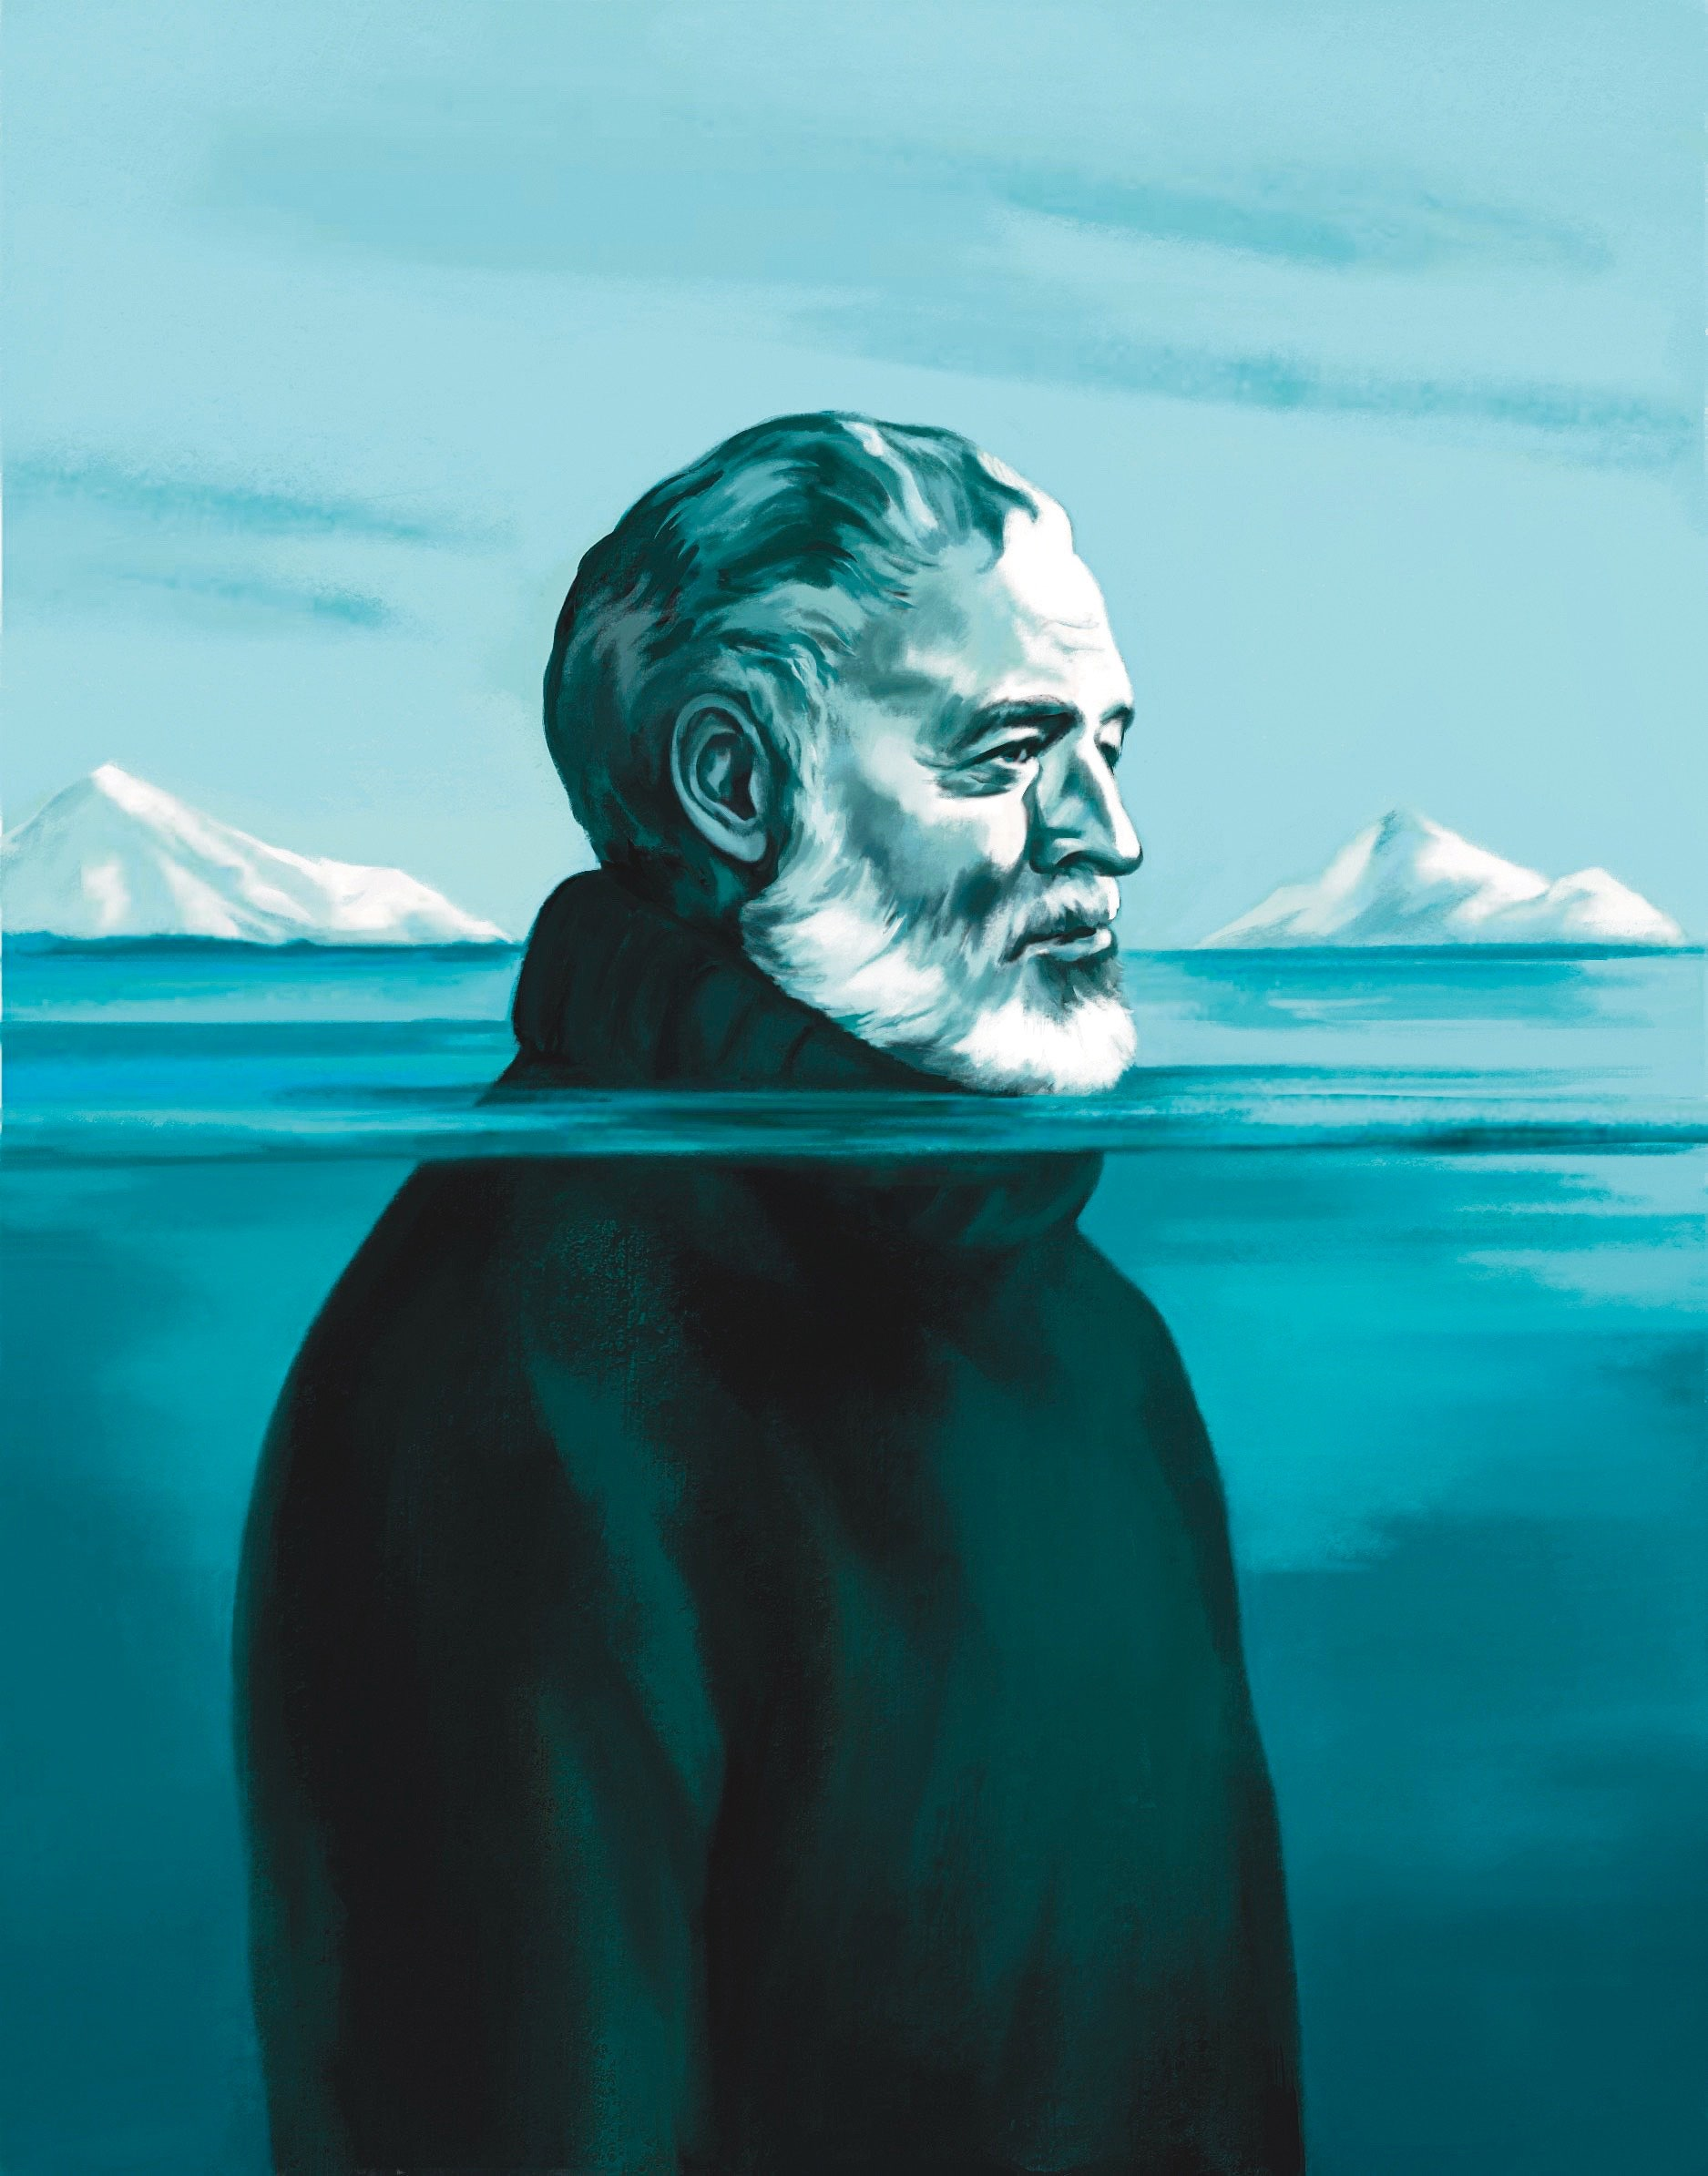 Hemingway learned to play the role of himself through study and persistence.Illustration by Aline Bureau